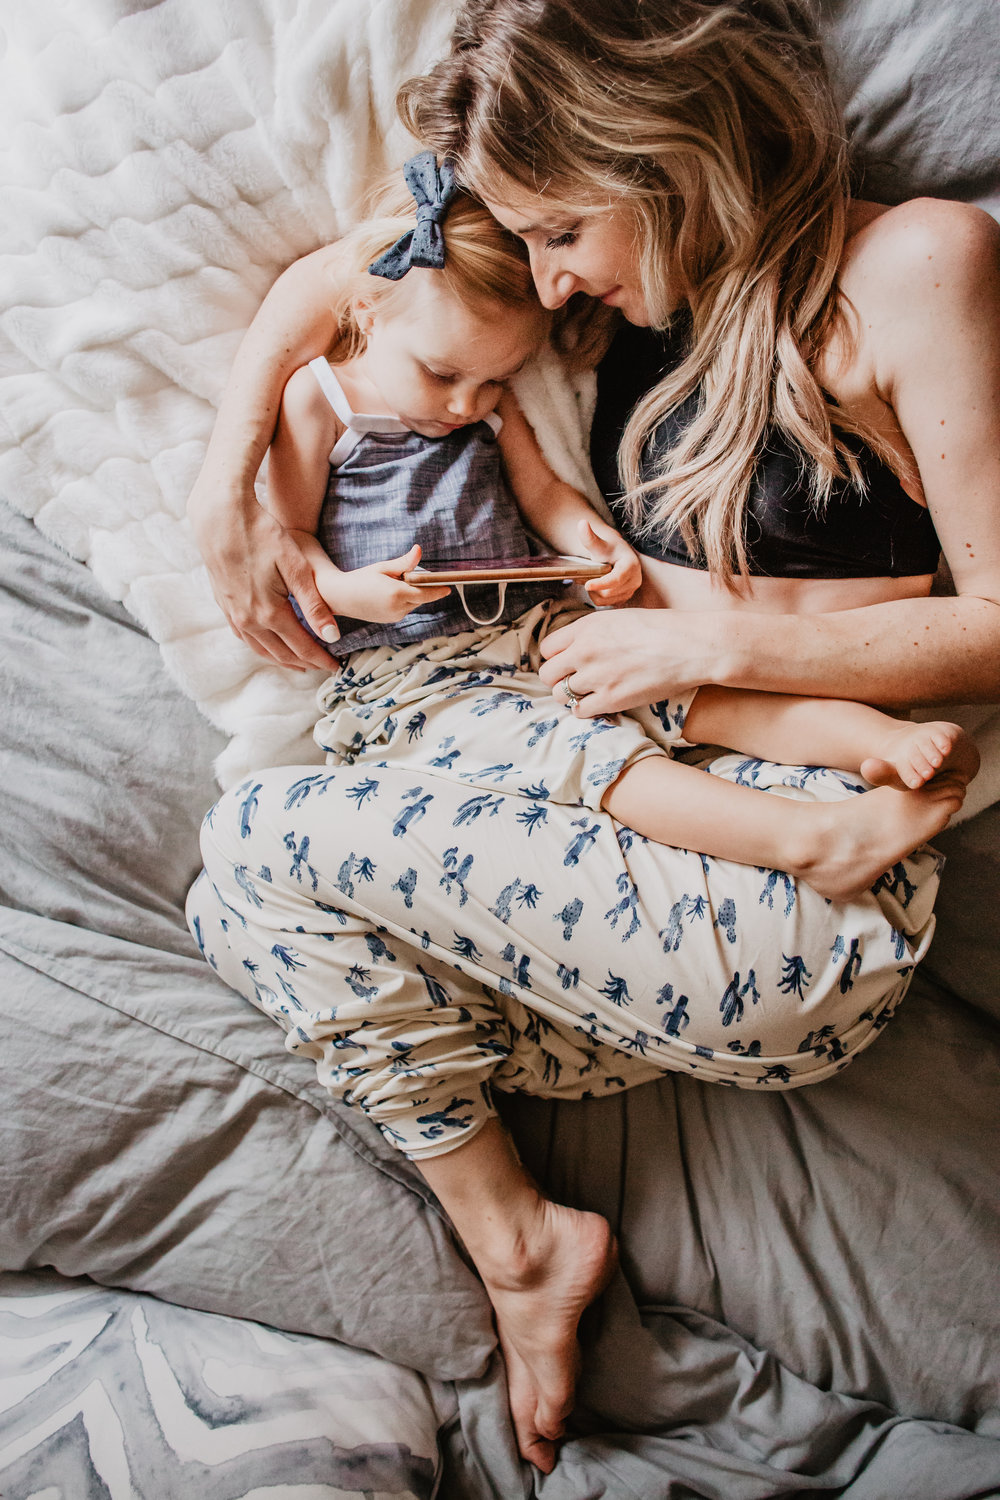 Best Mom Hacks - At Home Doctor Visits Covered by Insurance - Heal